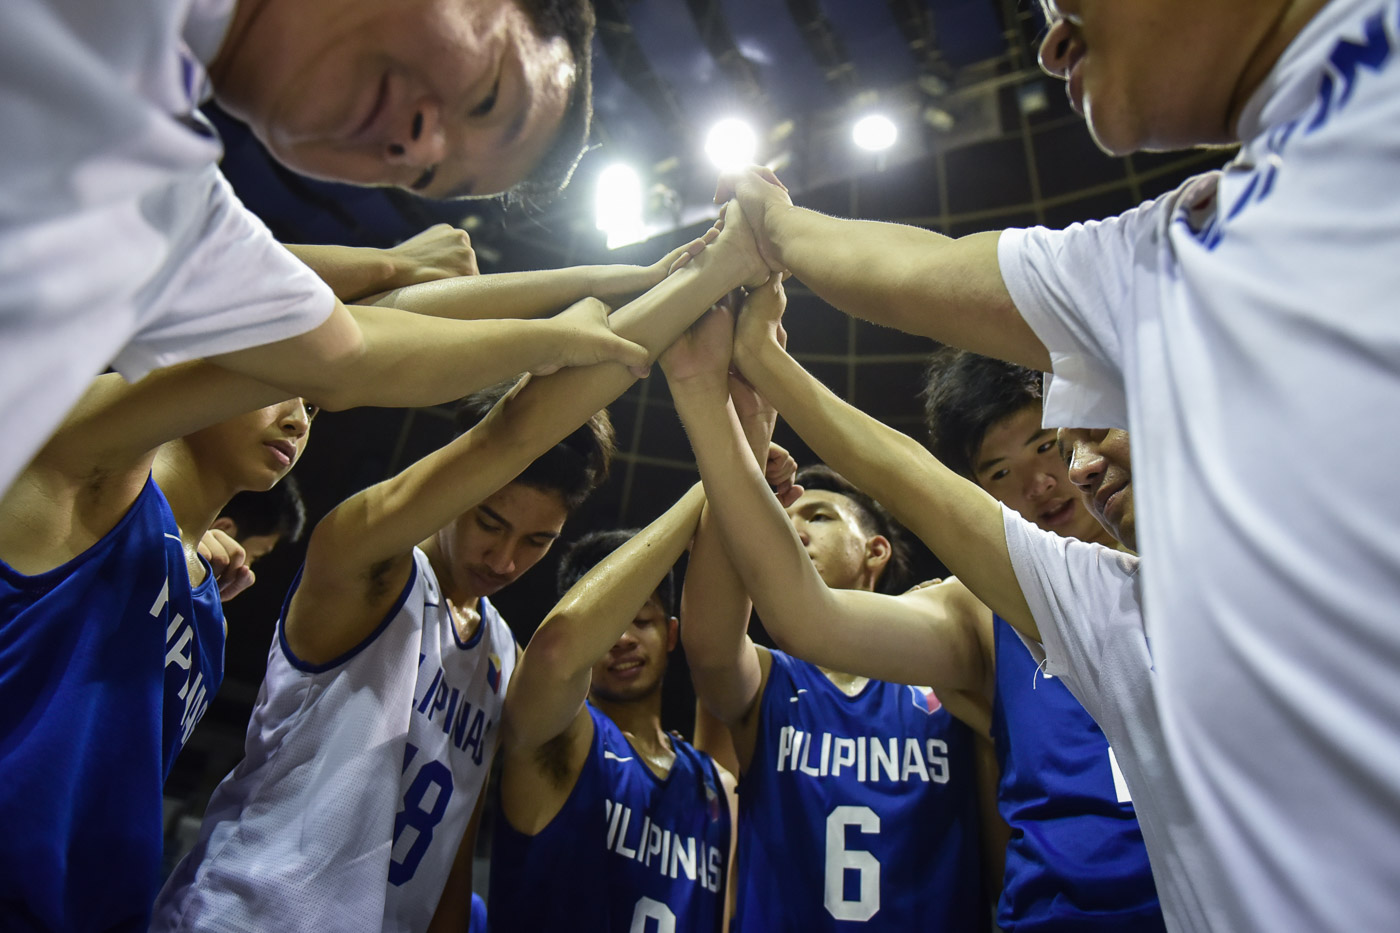 Batang Gilas values teamwork and is working on strengthening their camaraderie. Photo by LeAnne Jazul/Rappler